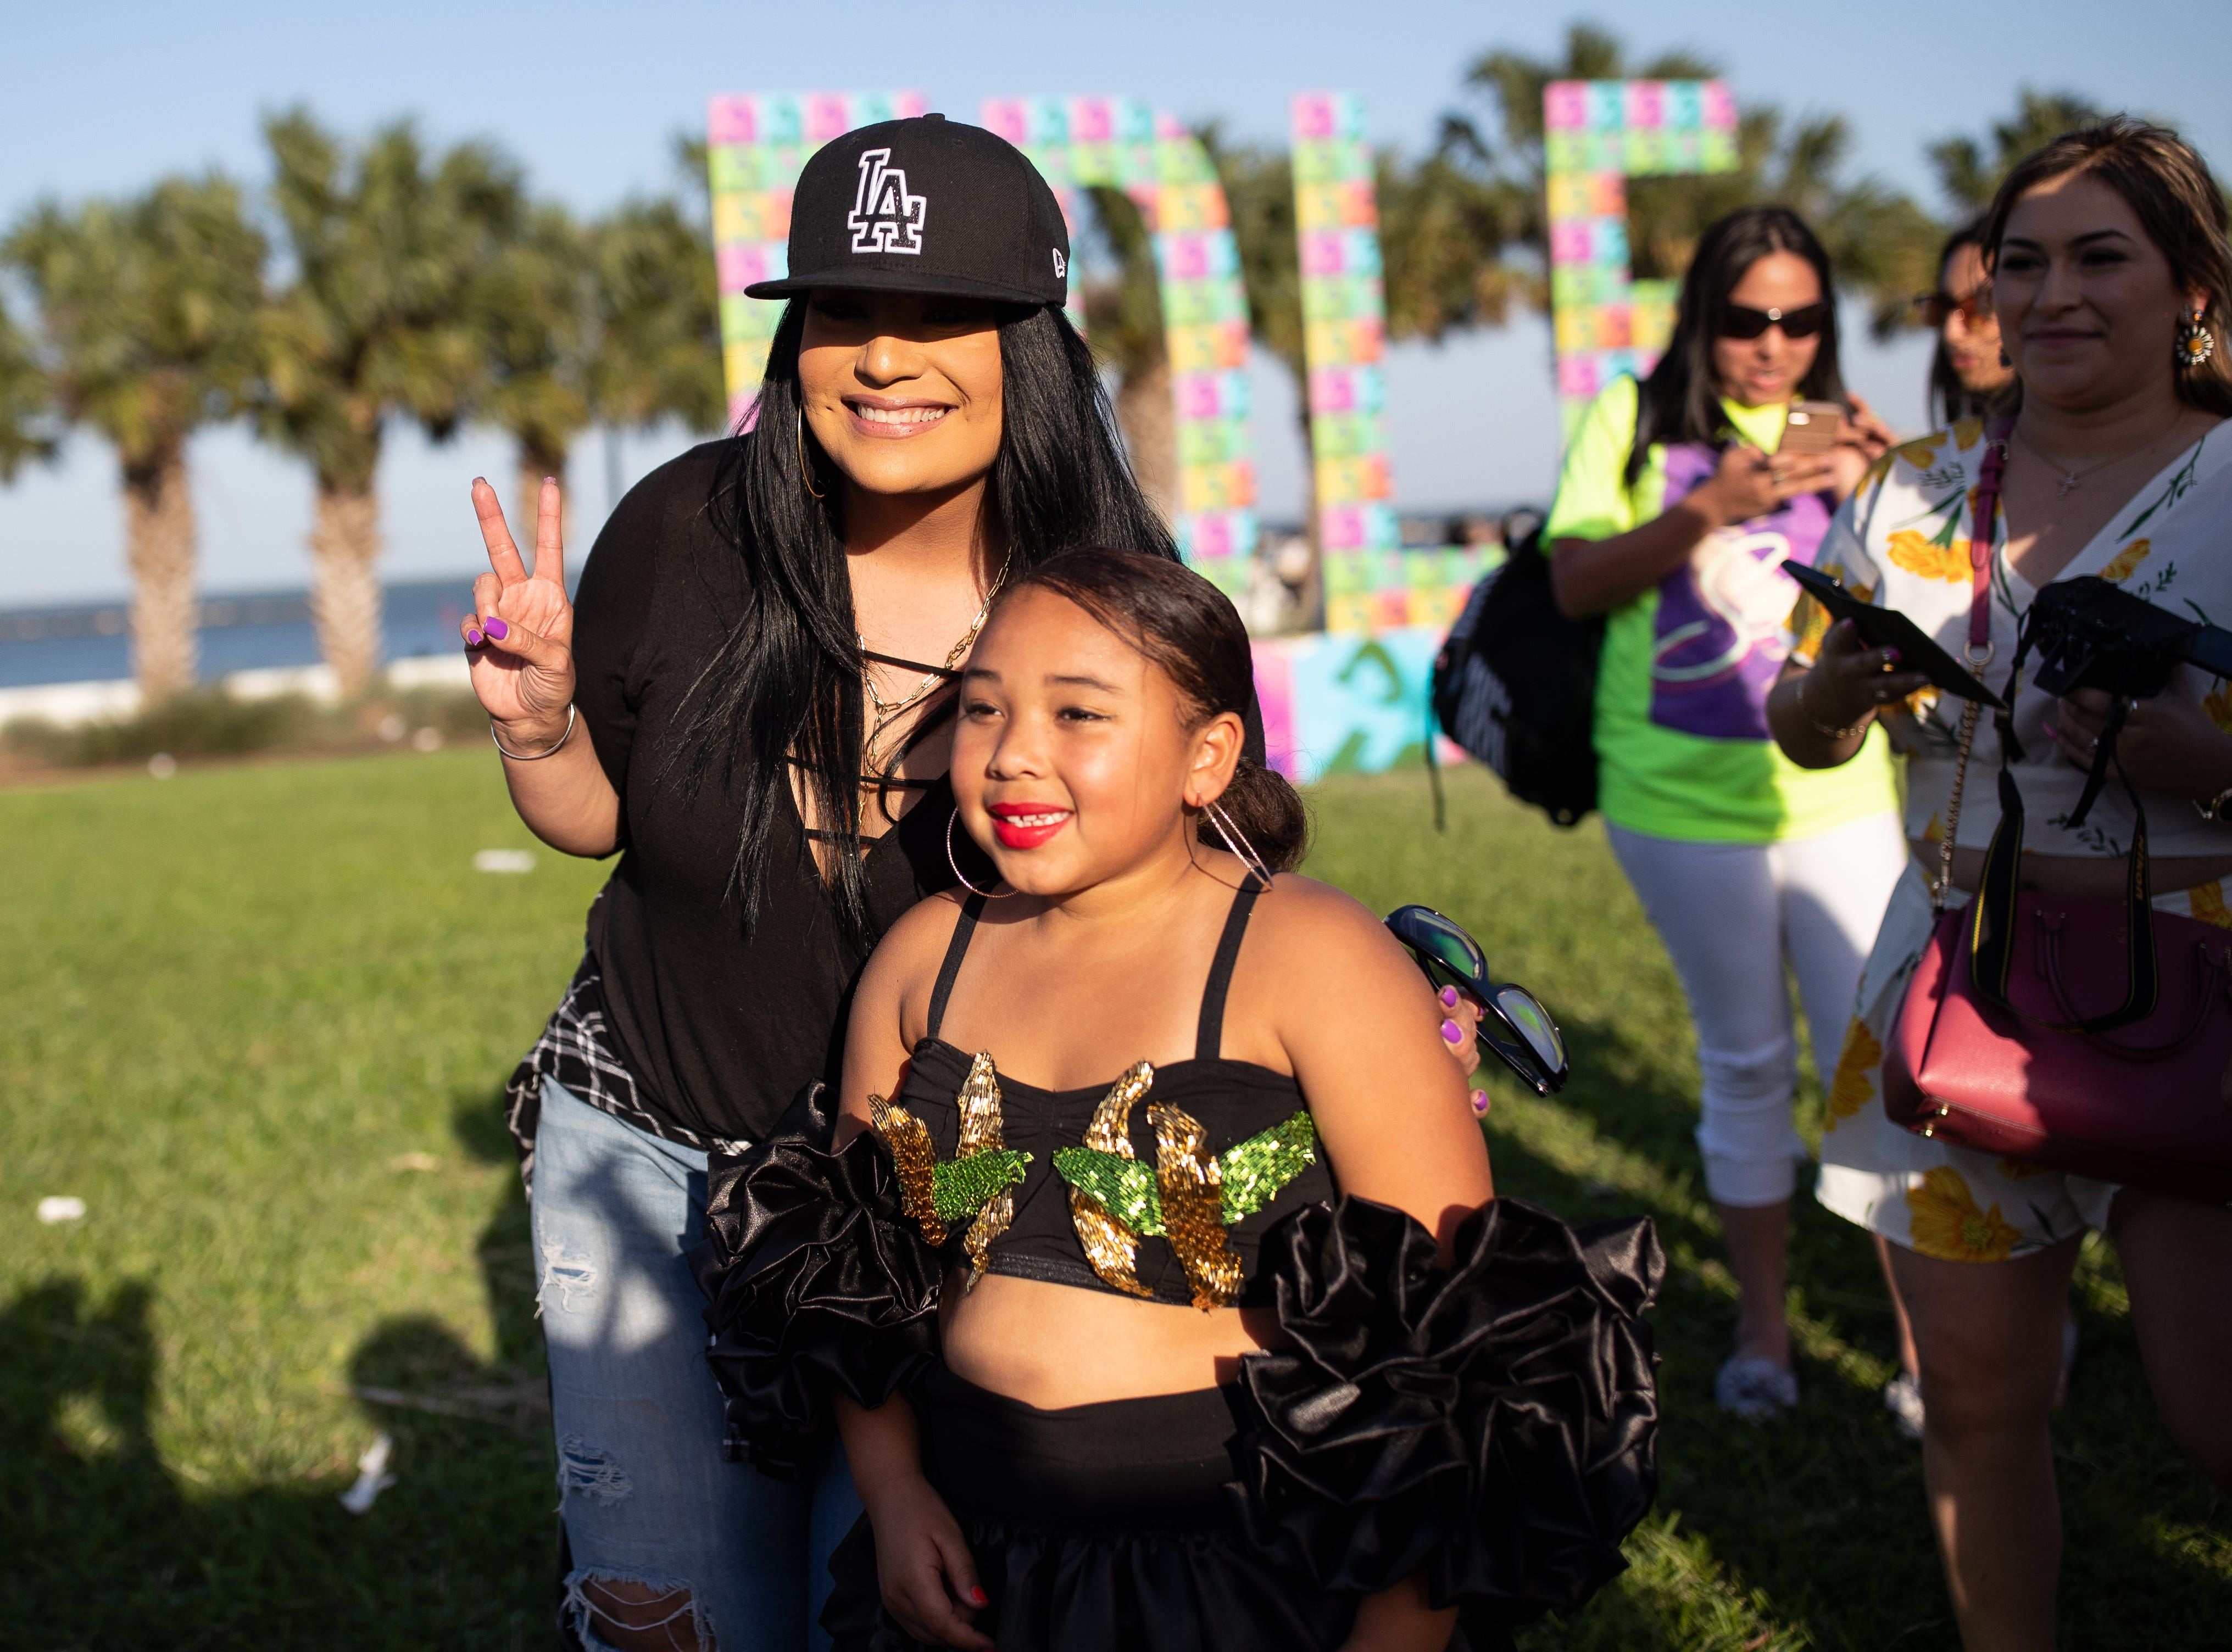 Suzette Quintanilla takes a photo a young girl dressed as Selena in the crowed during the second day of Fiesta de la Flor on Saturday, April 13, 2019.